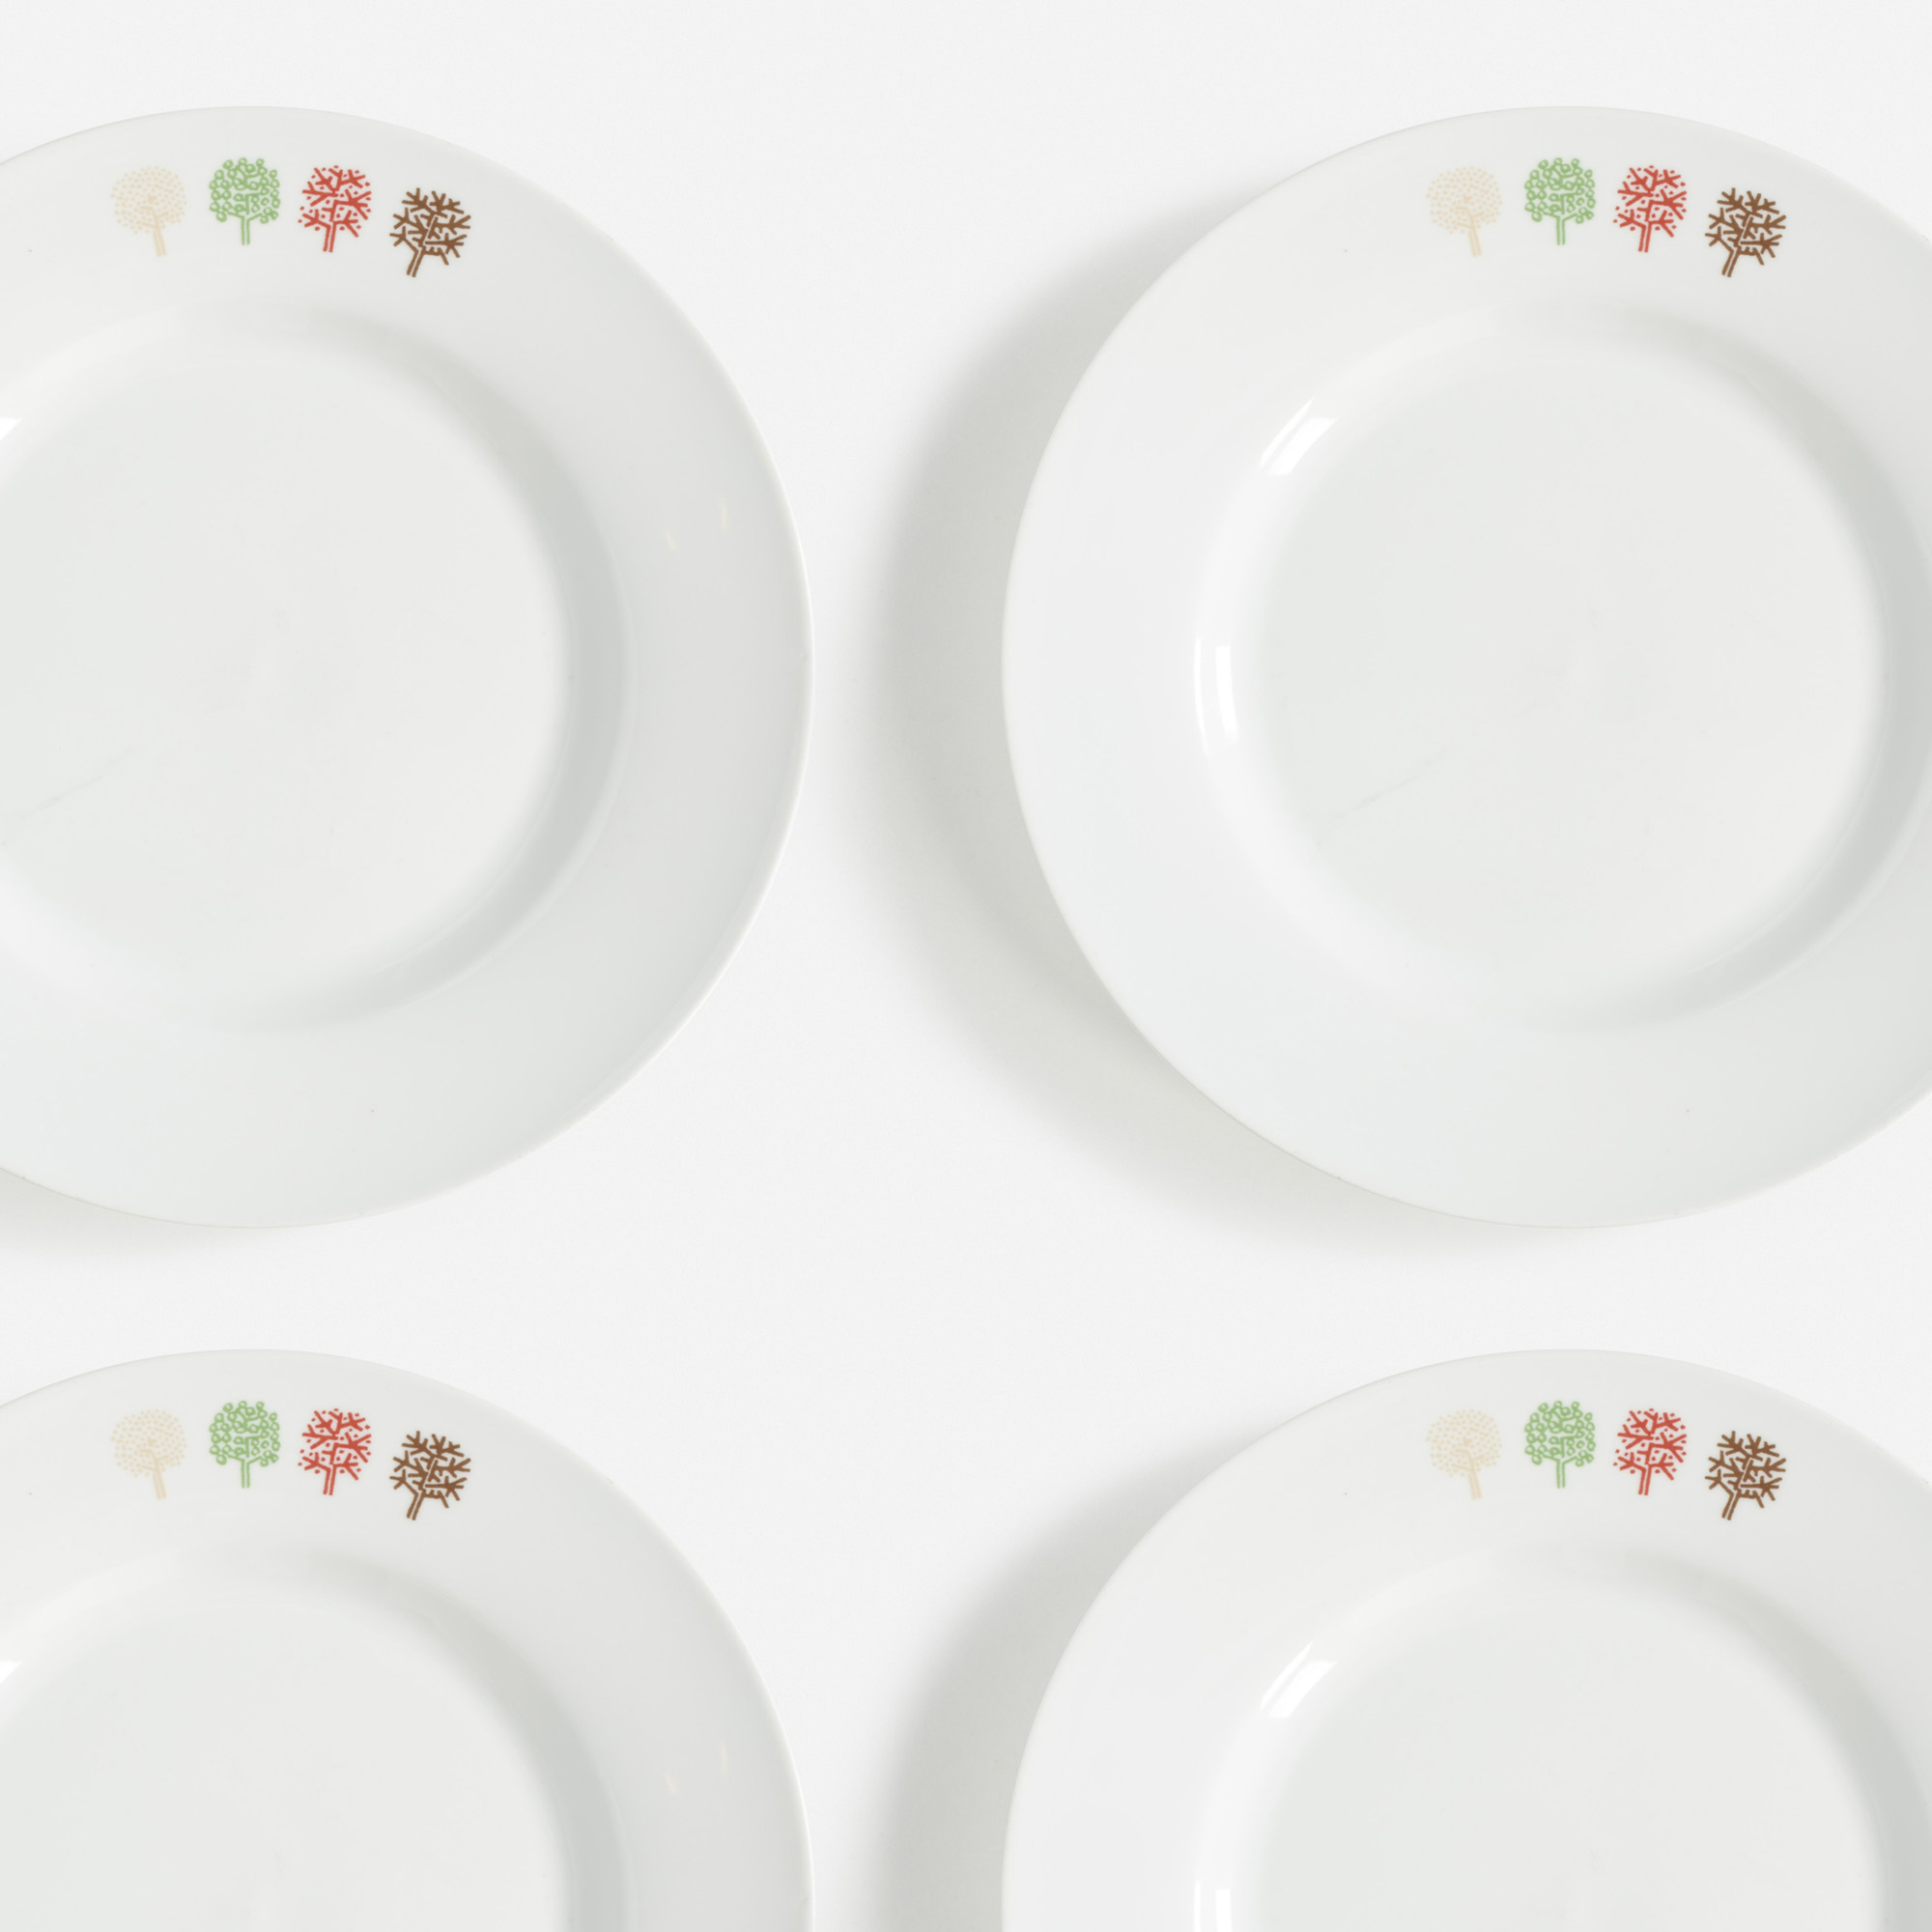 604:  / Four Seasons plates, set of twelve (1 of 1)